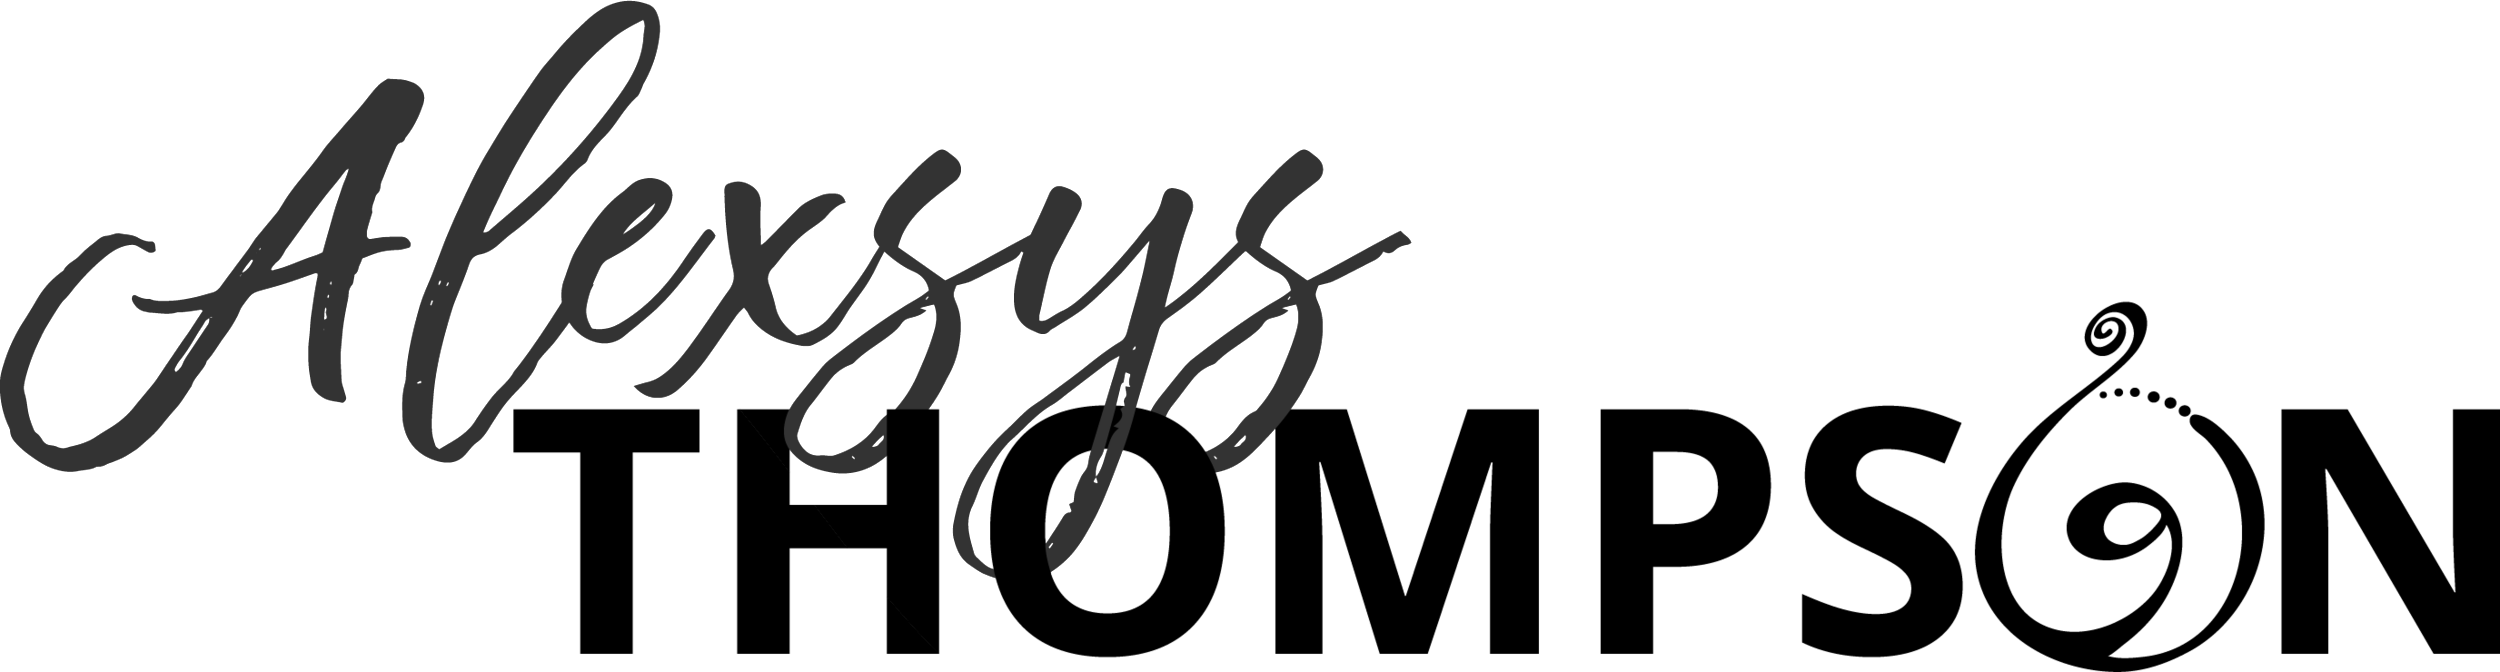 Alexsys Thompson Logo_Black.png